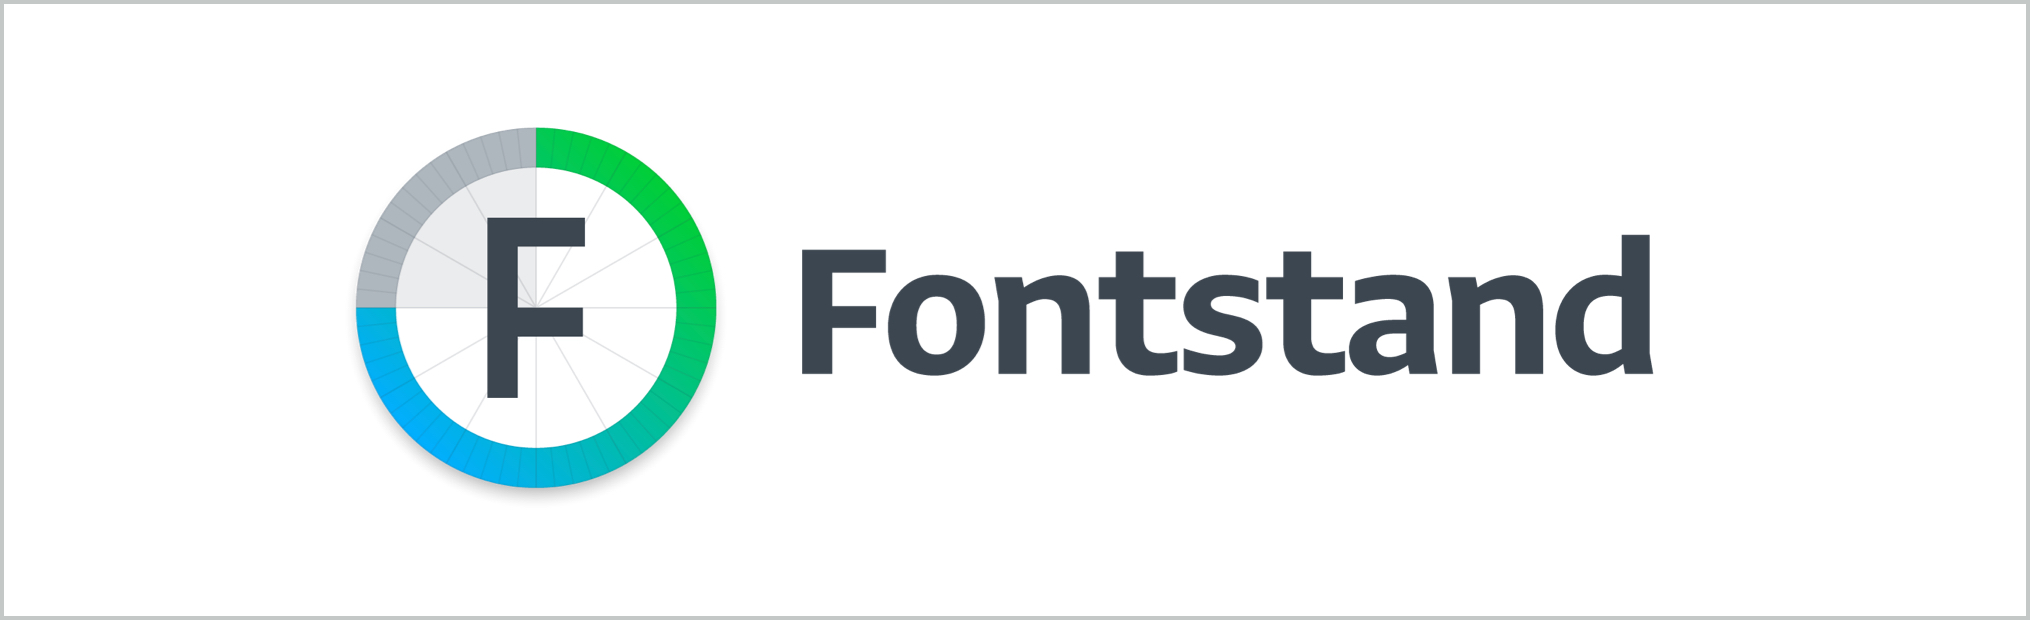 Fontstand-Graphic-img-D